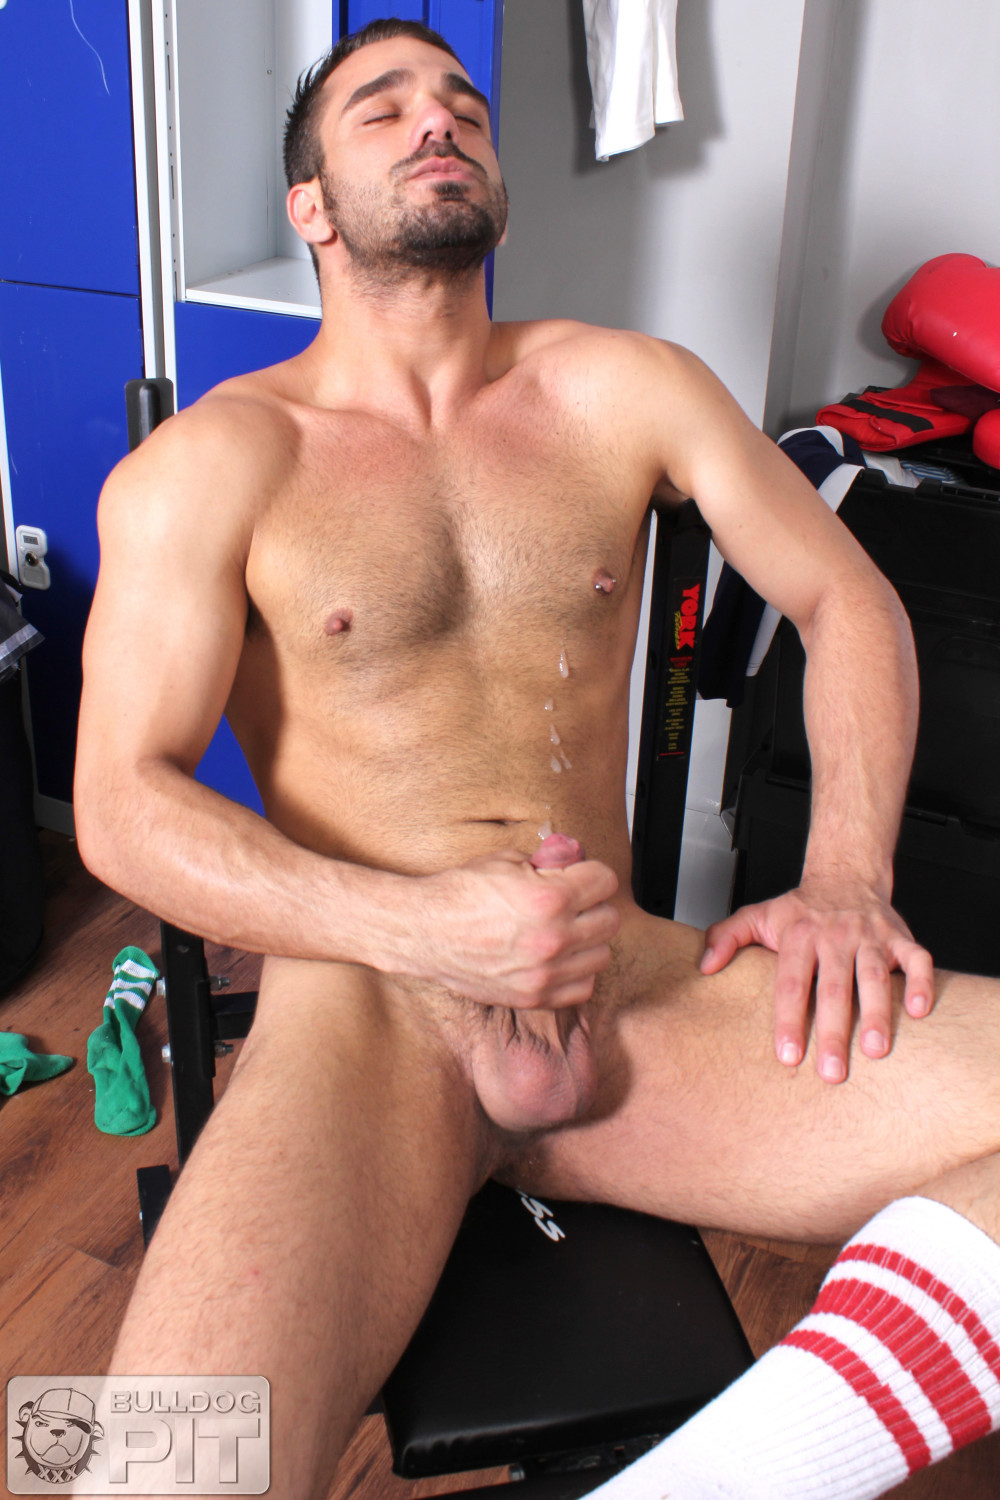 Bulldog-Pit-Jake-Bolton-Athlete-Fucking-Himself-With-A-Dildo-Amateur-Gay-Porn-10 Jake Bolton: Hung Masculine Jock Fucks Himself With Dildos